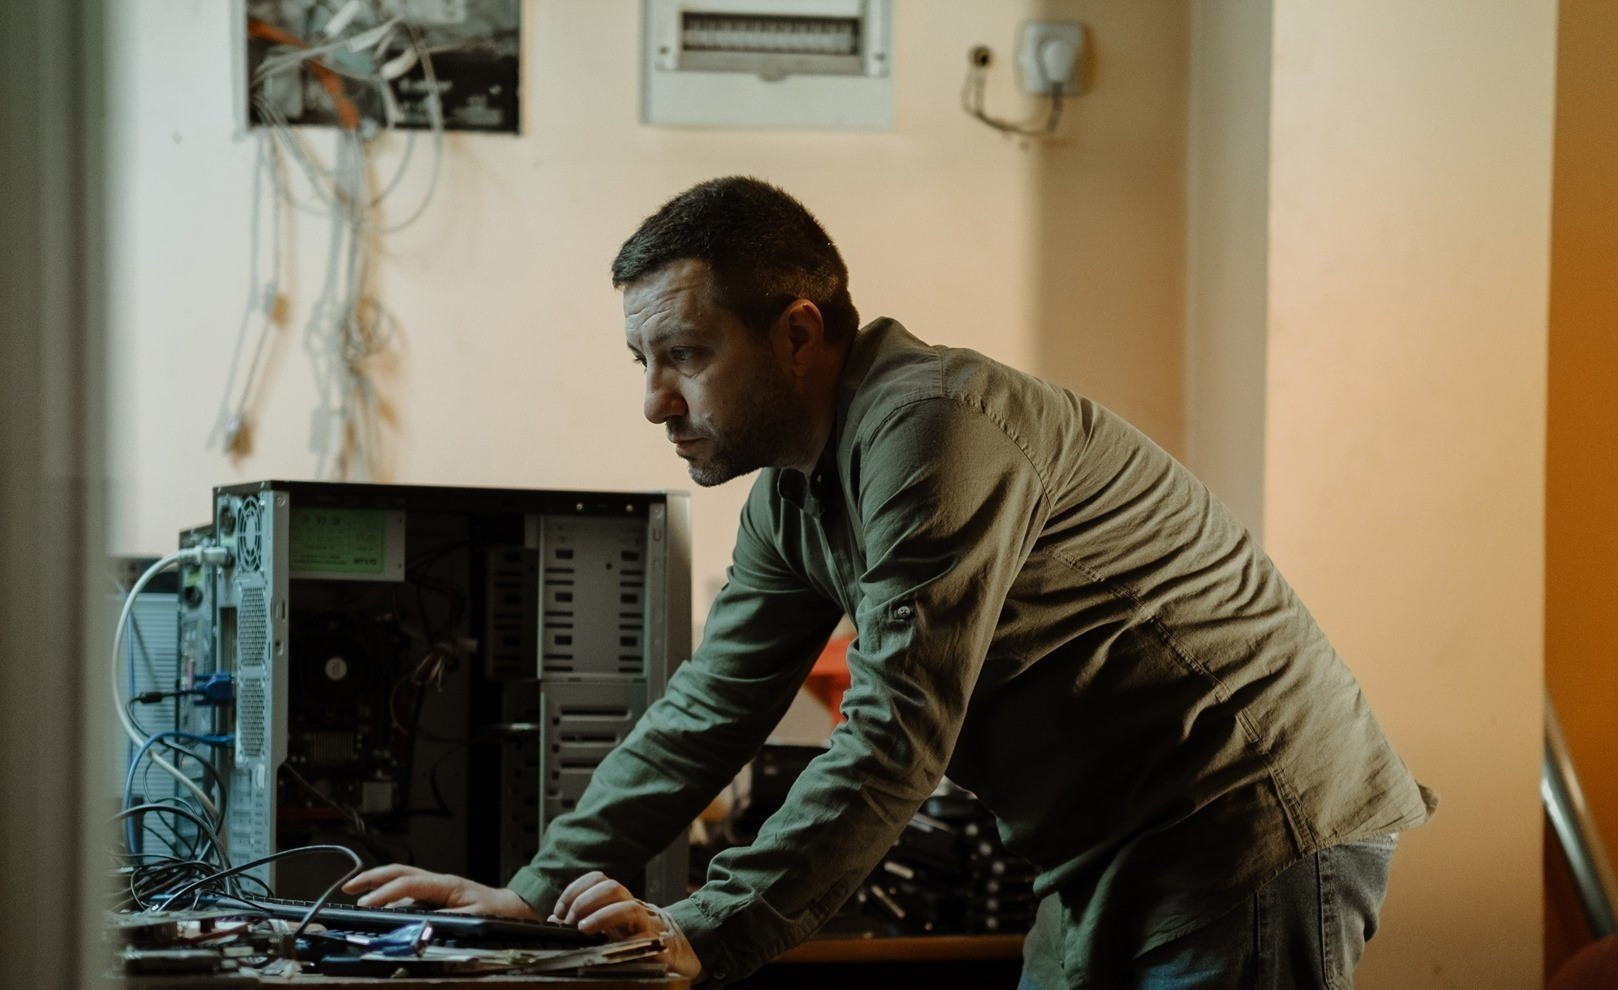 """Borce Stamenov at work repairing a computer - photo taken from the Facebook profile of the """"Donate a computer"""" initiative"""